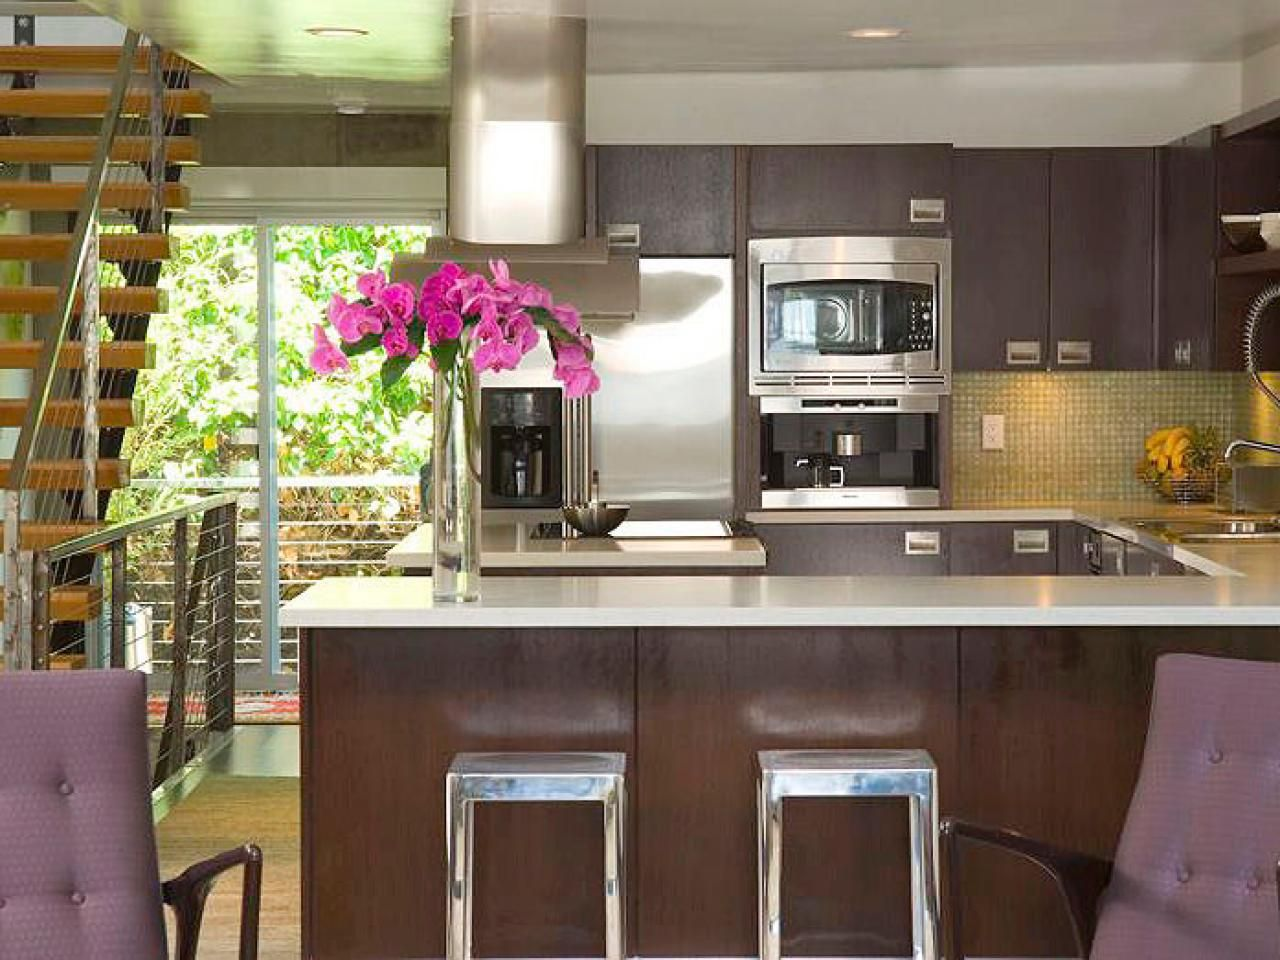 Top 6 Kitchen Layouts  Beautiful Kitchen Designs And Beautiful Magnificent How To Design Kitchen Cabinets Layout Decorating Design